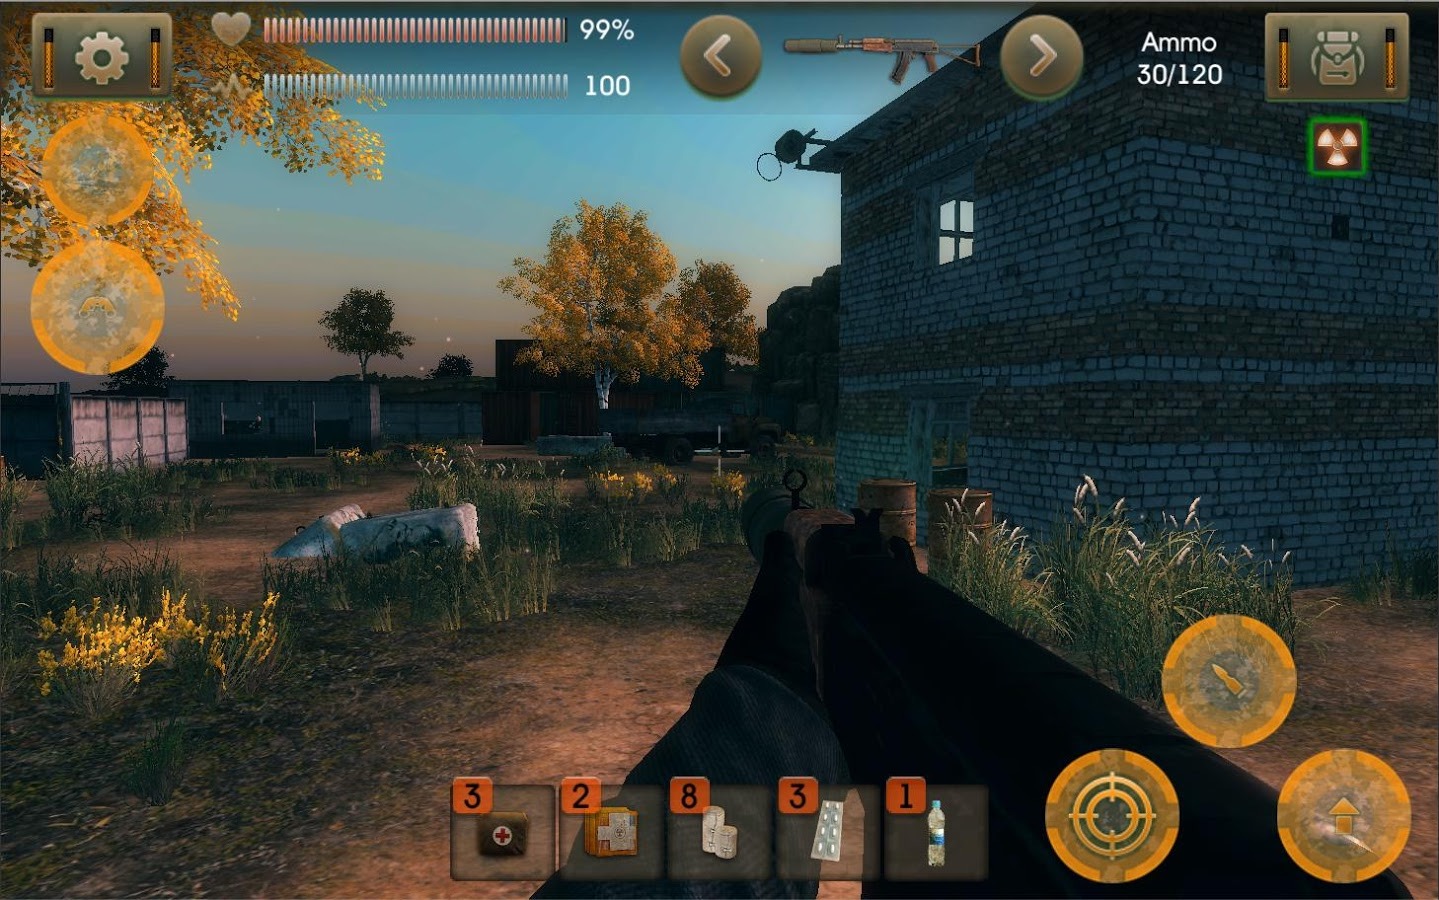 The Sun Lite Beta MOD APK